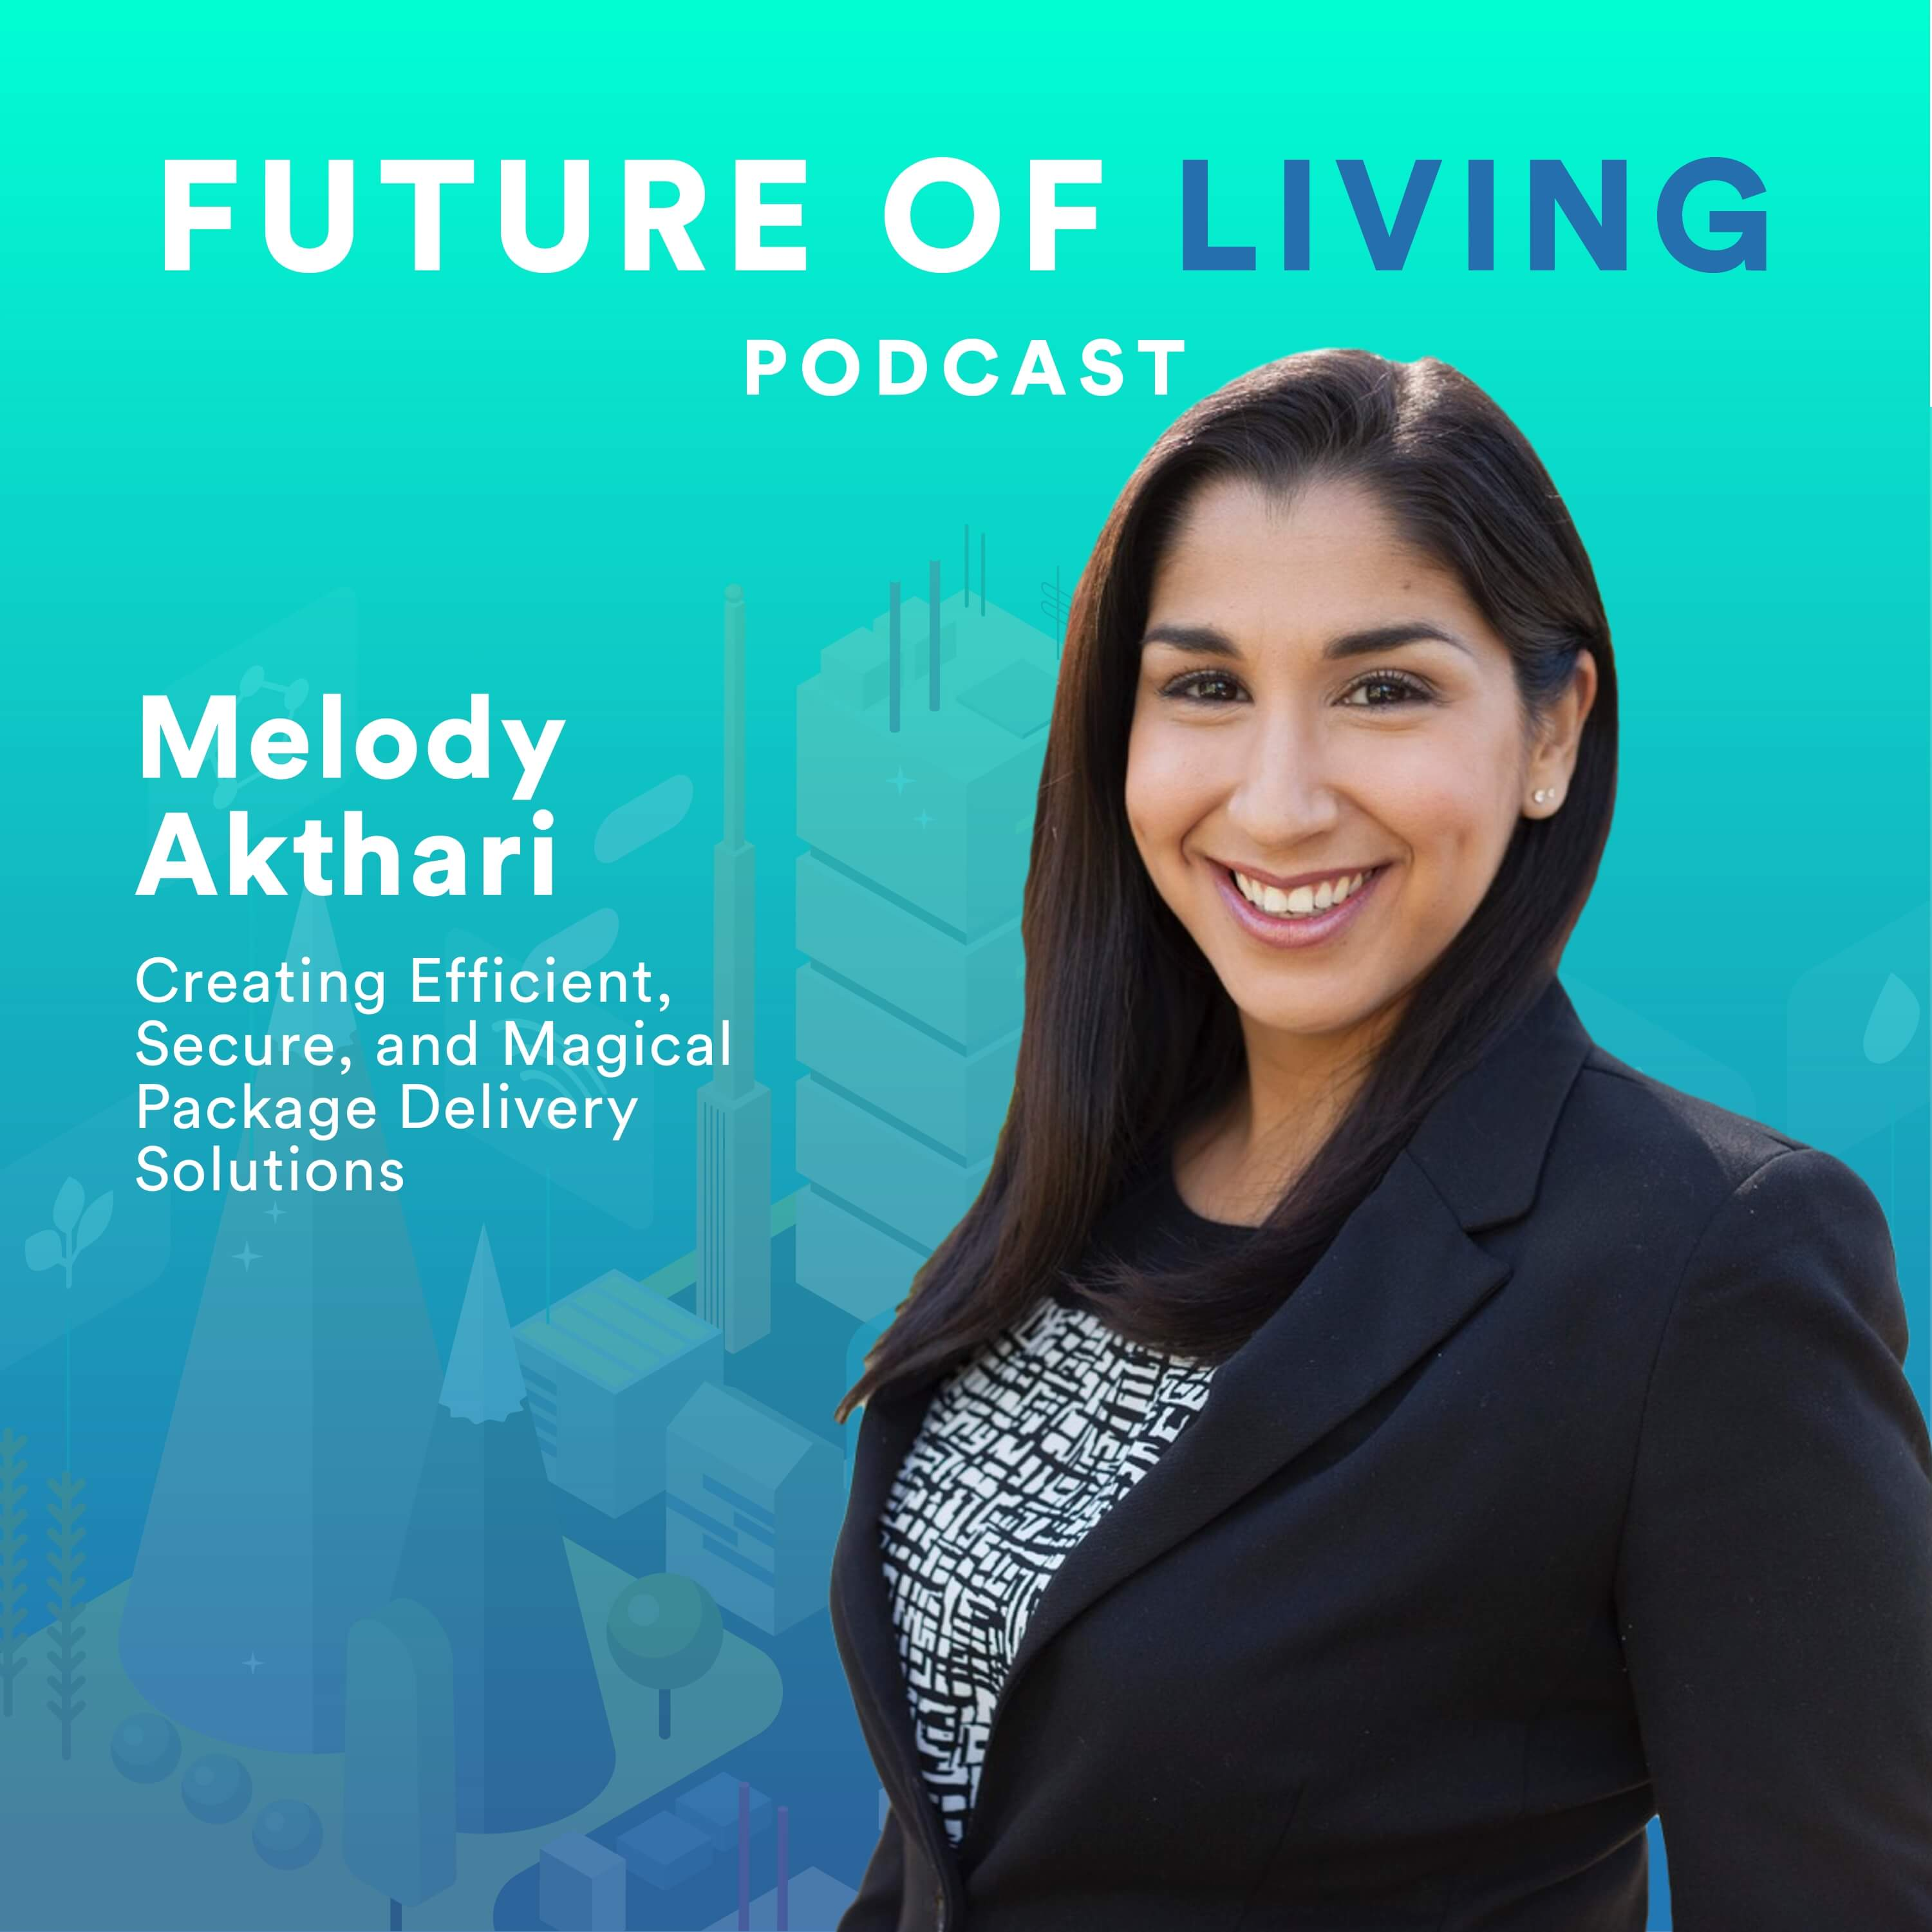 Melody Akhtari on the Future of Living with Blake Miller